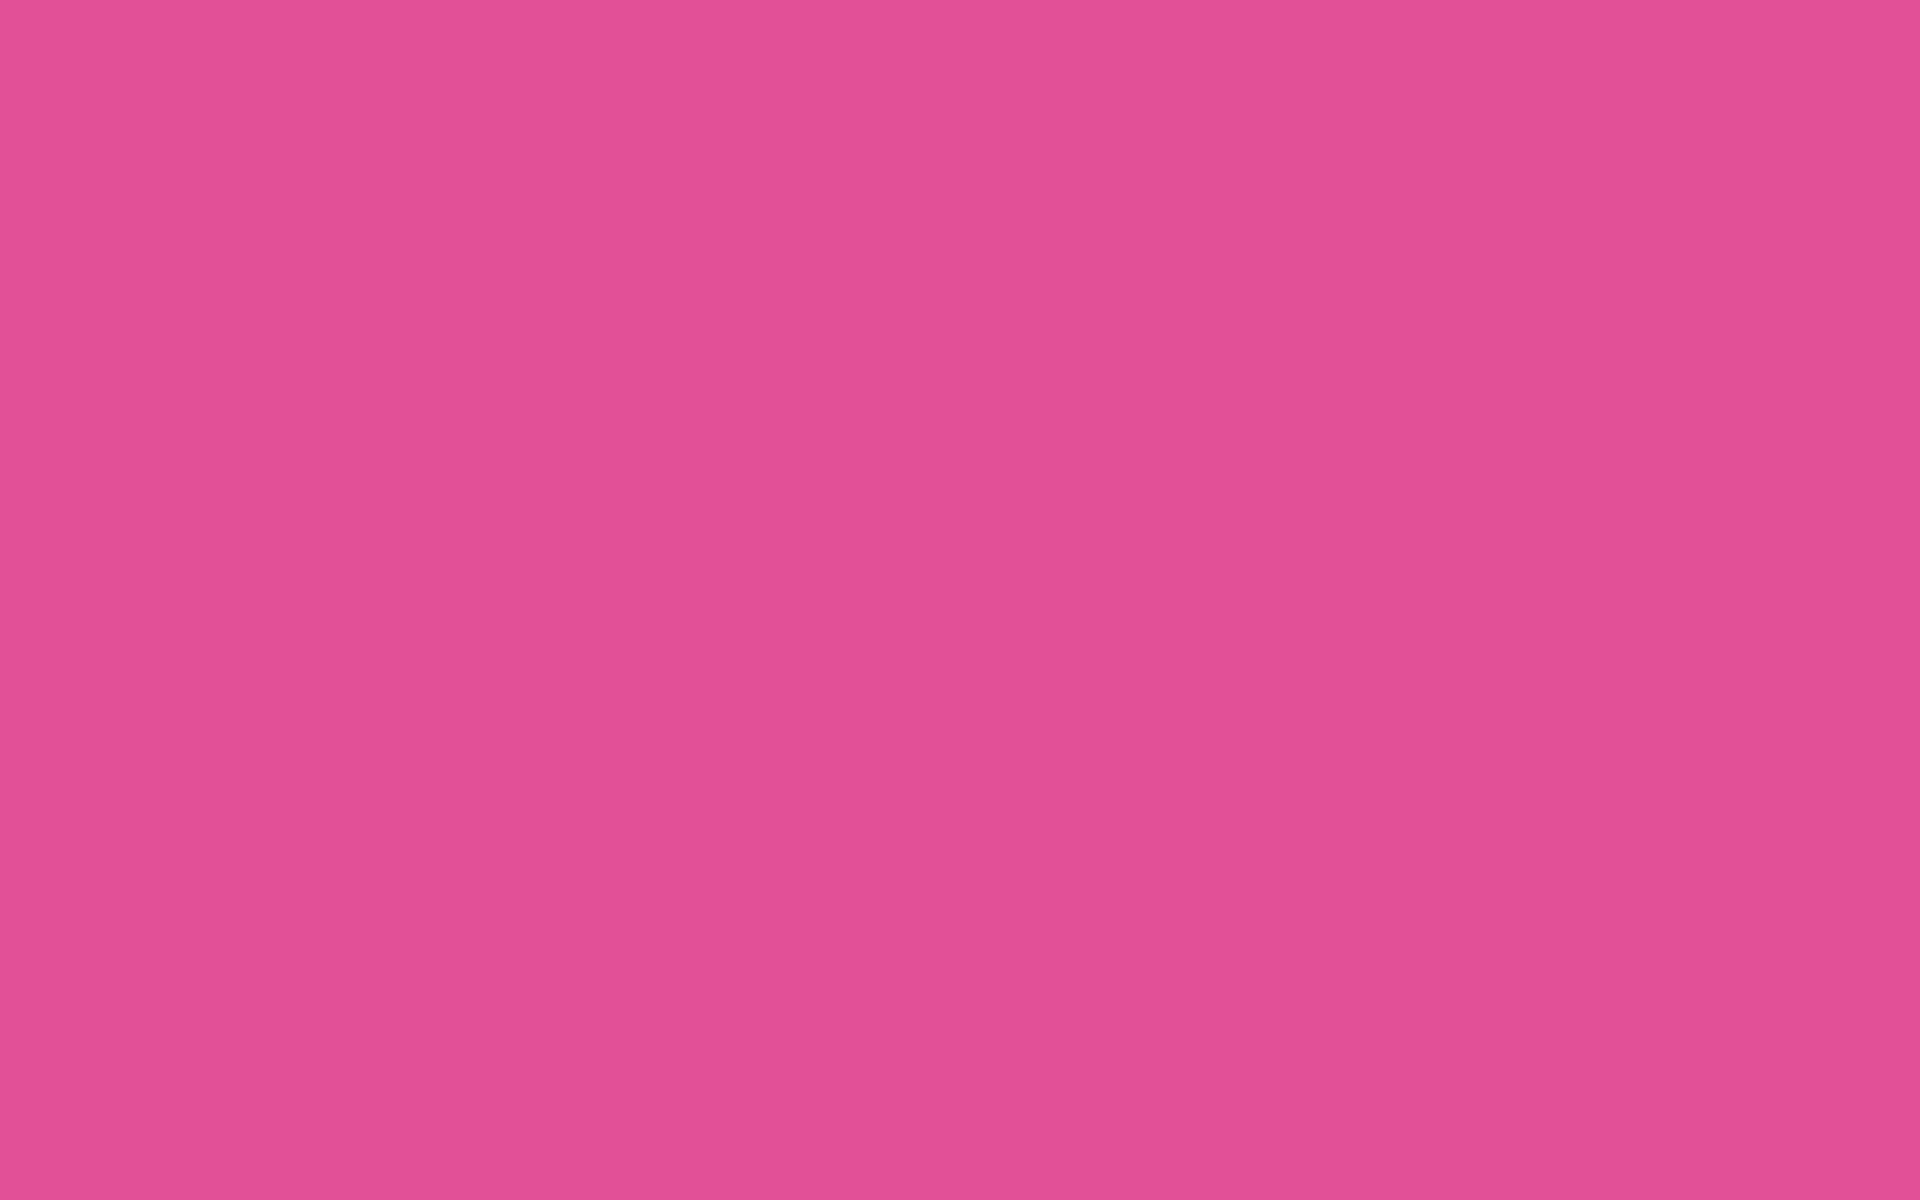 1920x1200 Raspberry Pink Solid Color Background